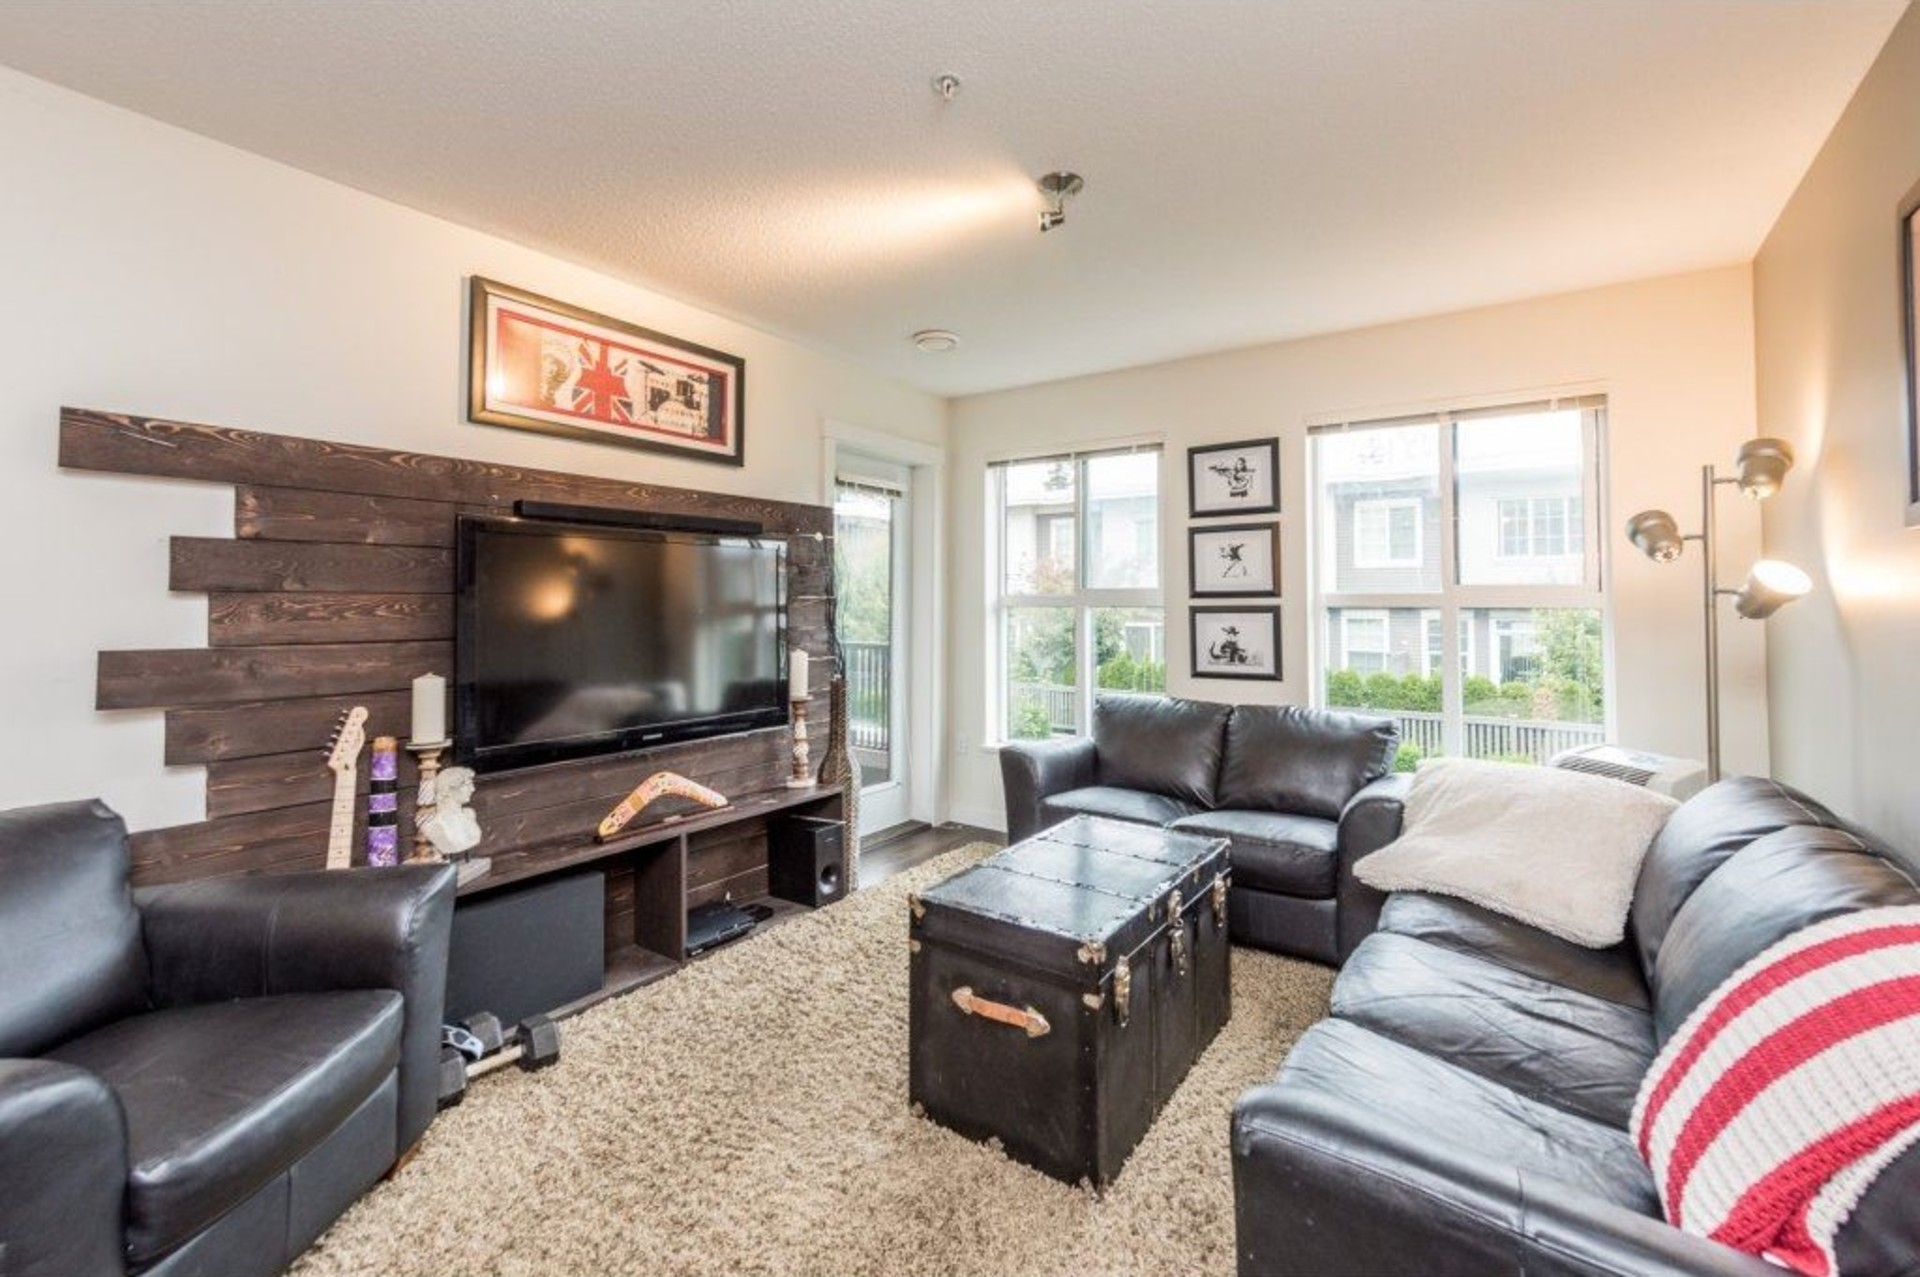 262240727-8 at 206 - 3323 151 Street, Morgan Creek, South Surrey White Rock